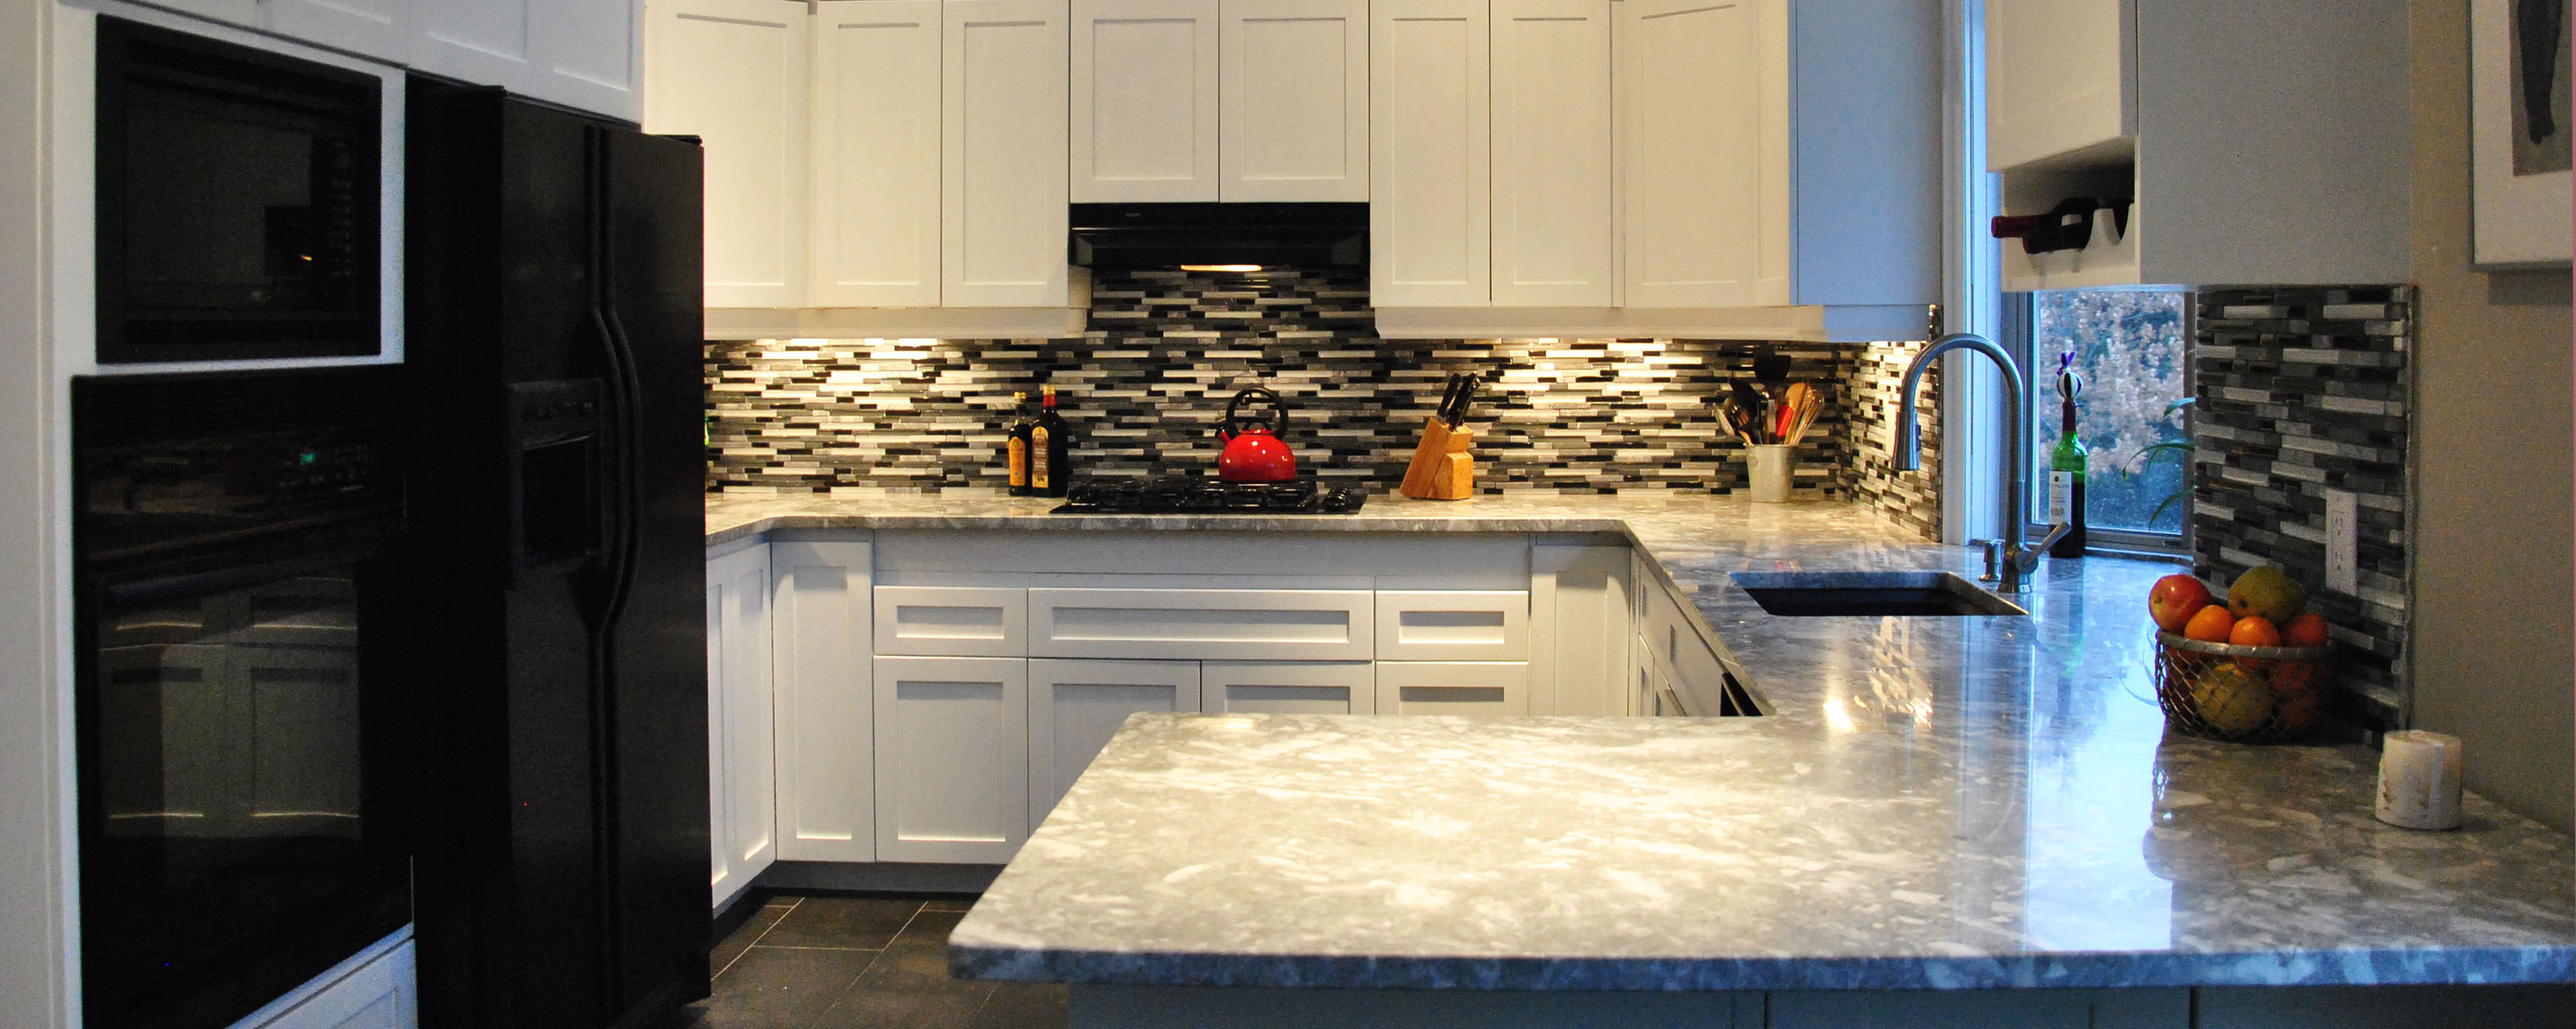 Counter Top Gallery | New Style Kitchen Cabinets corp.